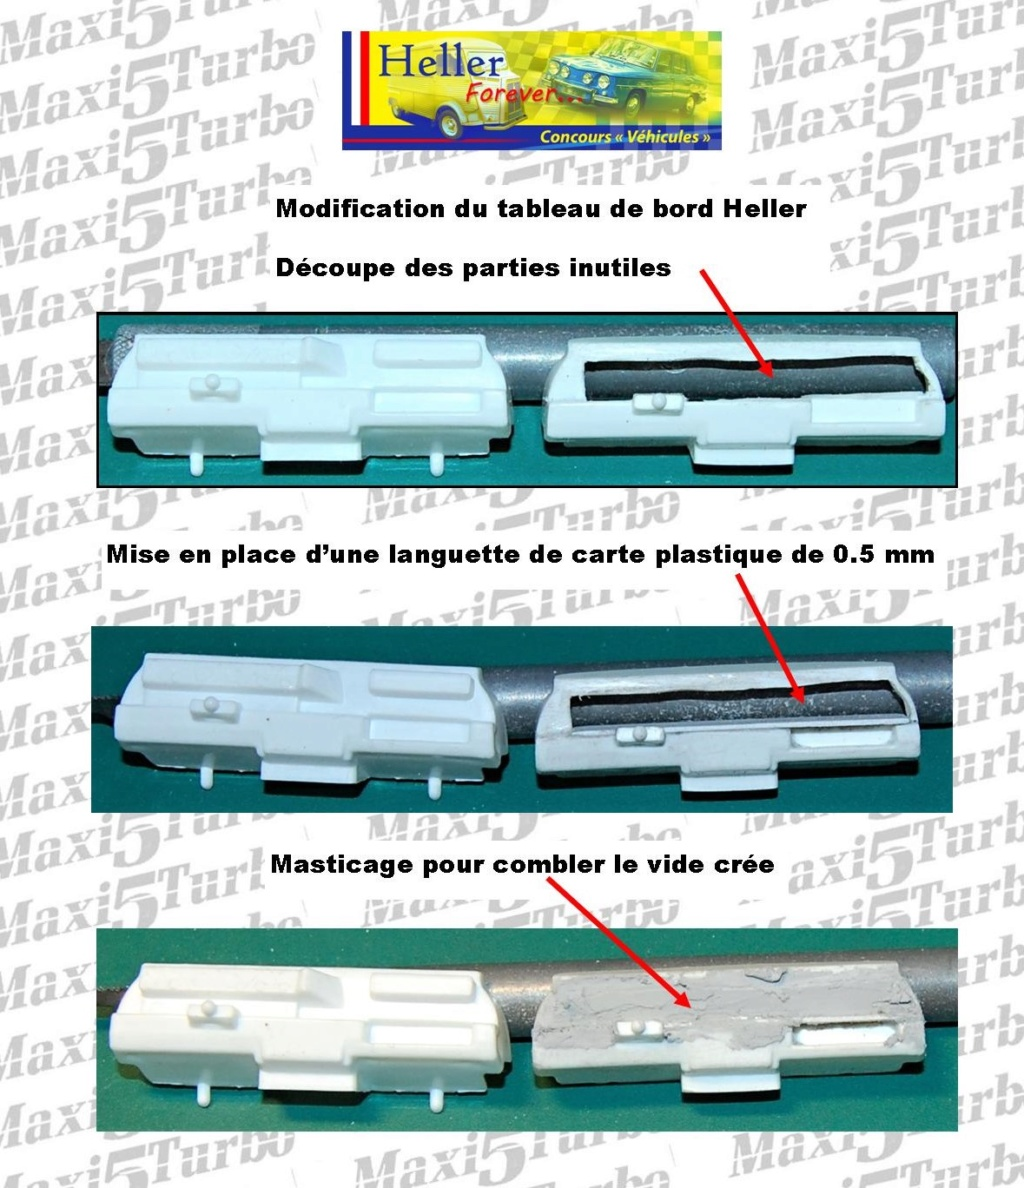 (1/24) Renault 5 Maxi turbo Ref 80717 ( Hors delai ) - Page 6 8310